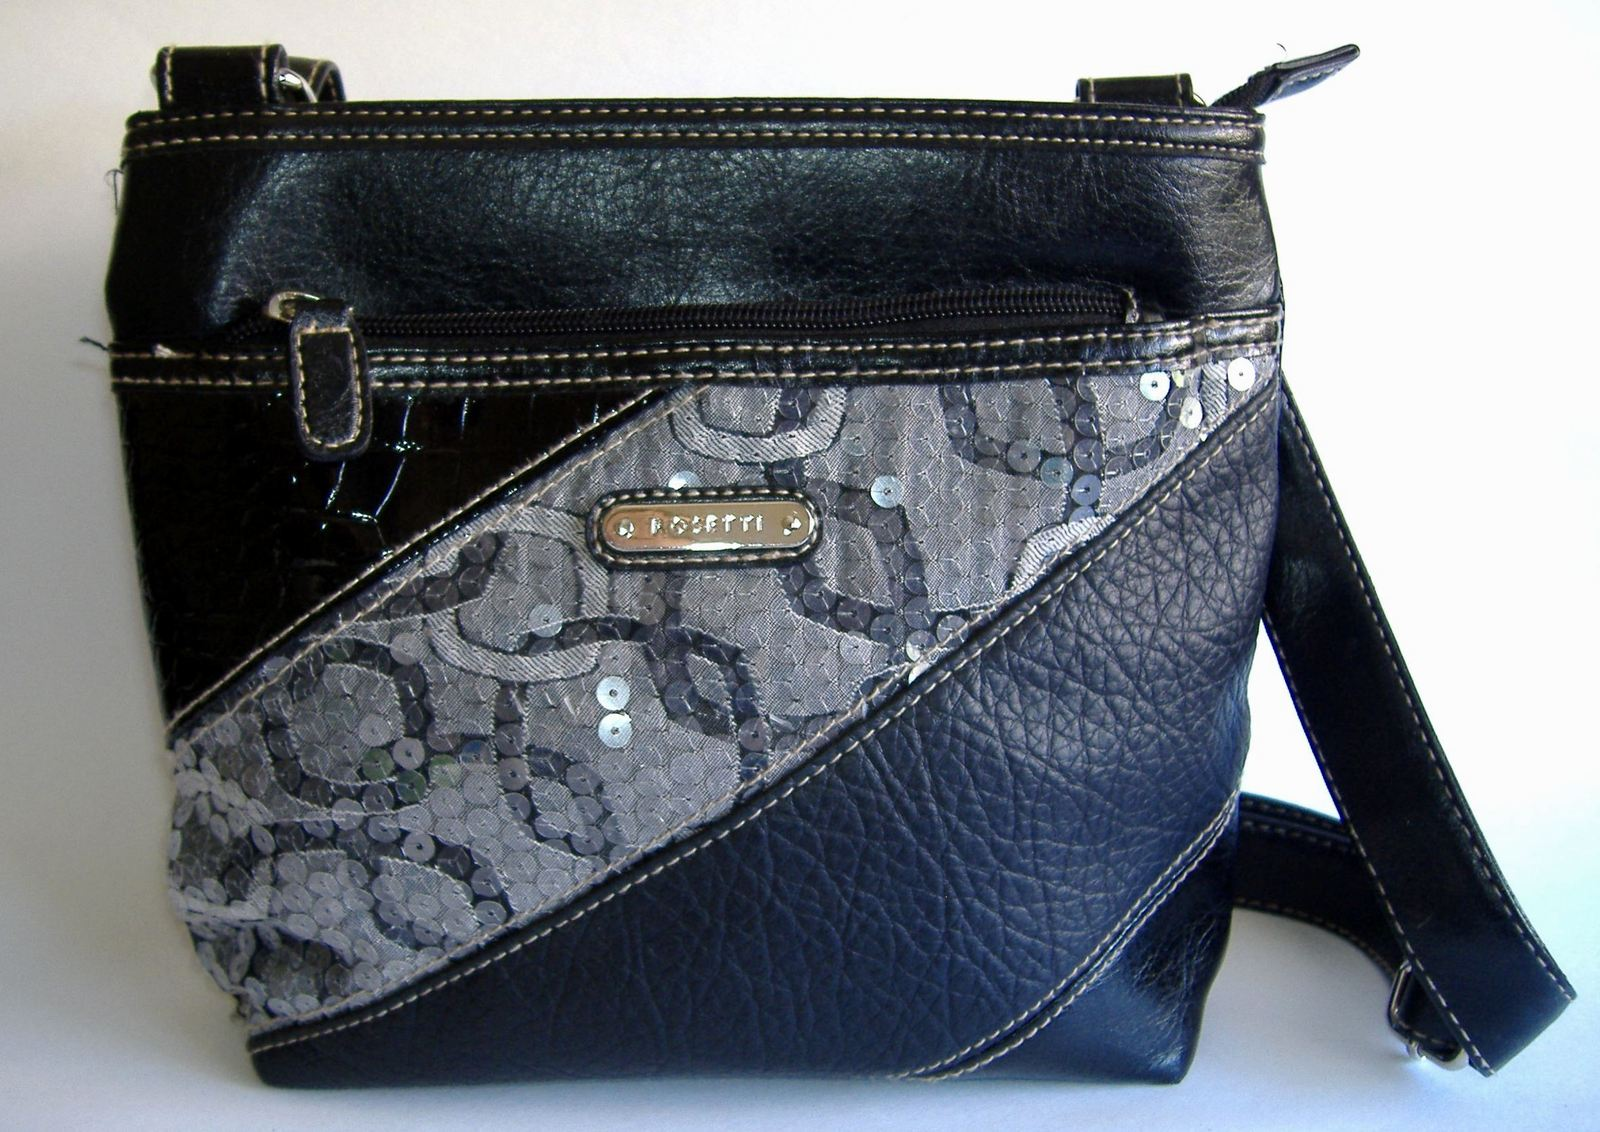 3db6dbc398dc Rosetti Purse Black - Best Purse Image Ccdbb.Org